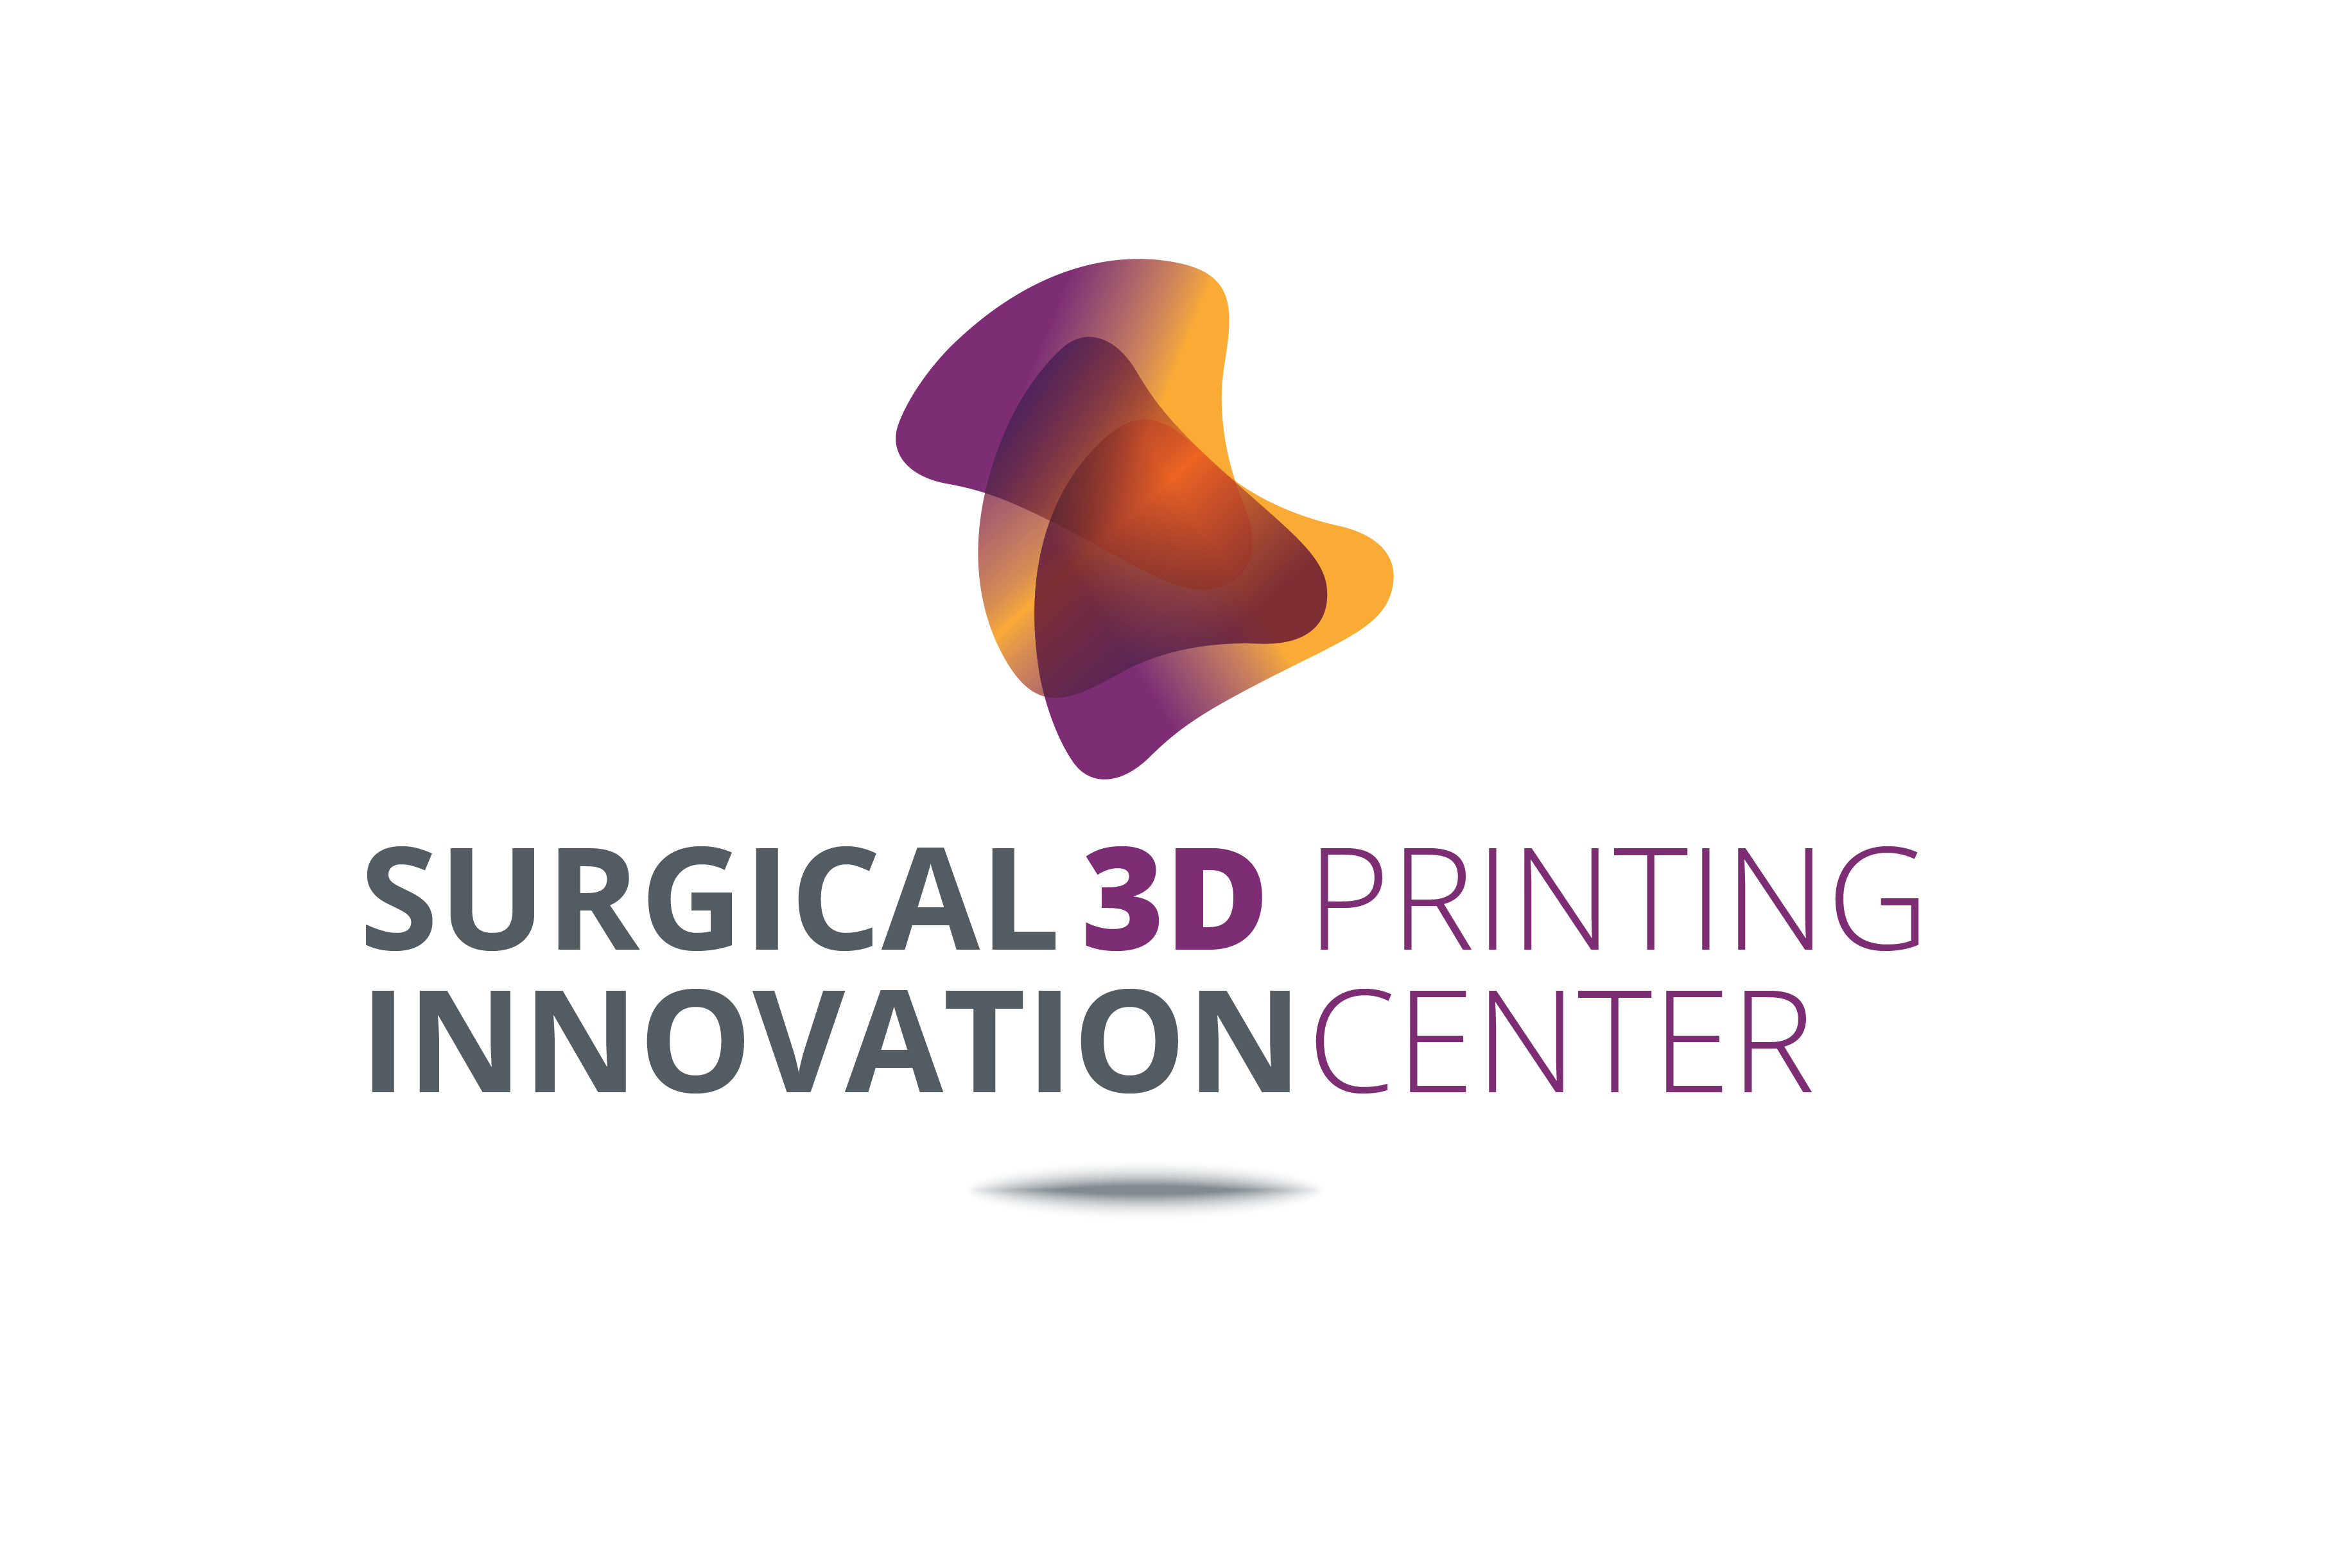 LOGO SURGICAL INNOVATION